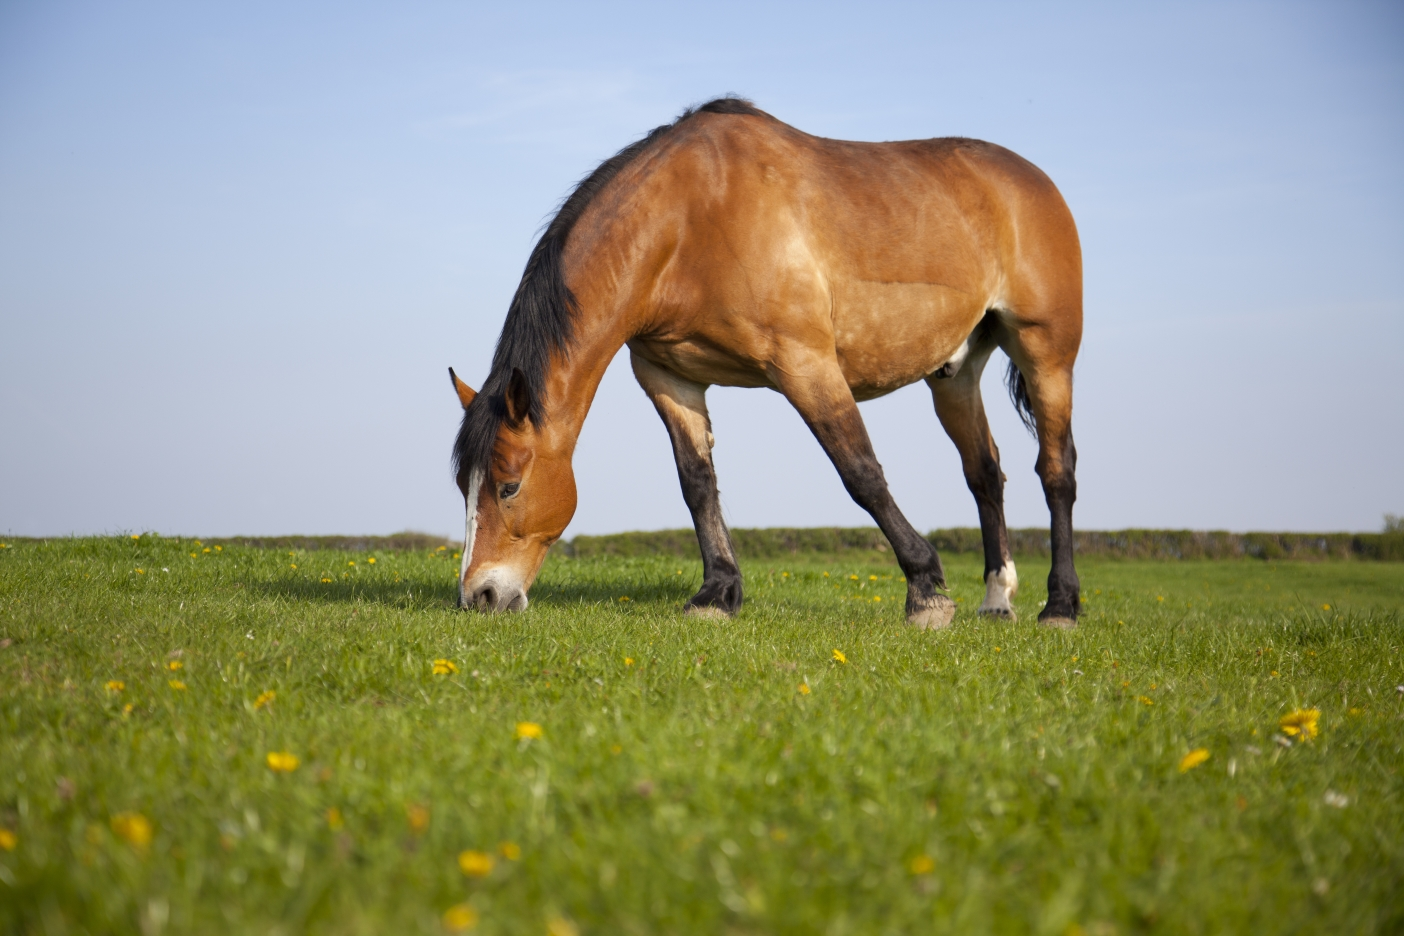 Horses are herbivores which means they only eat plants.